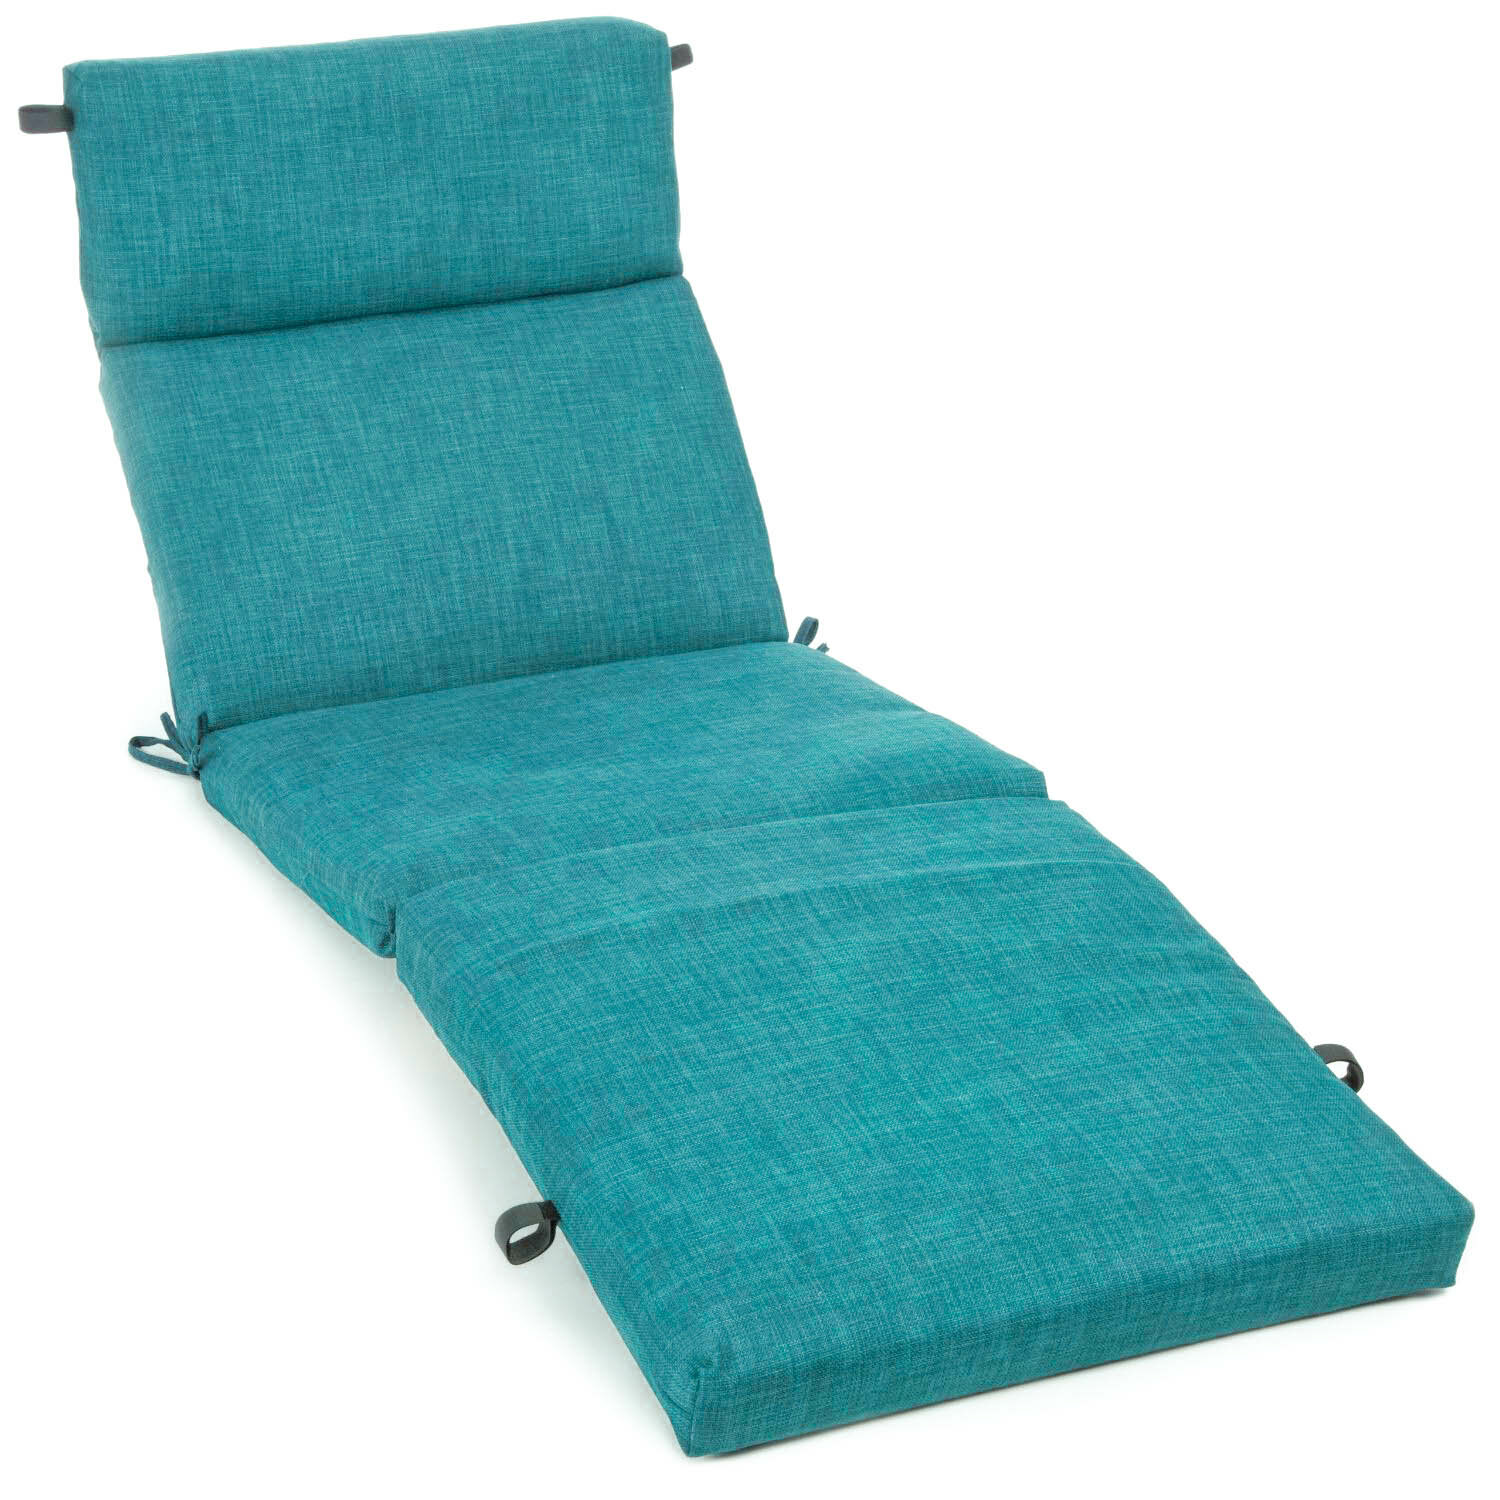 cushions so chaise wicker piece set com wave lounge source outdoor